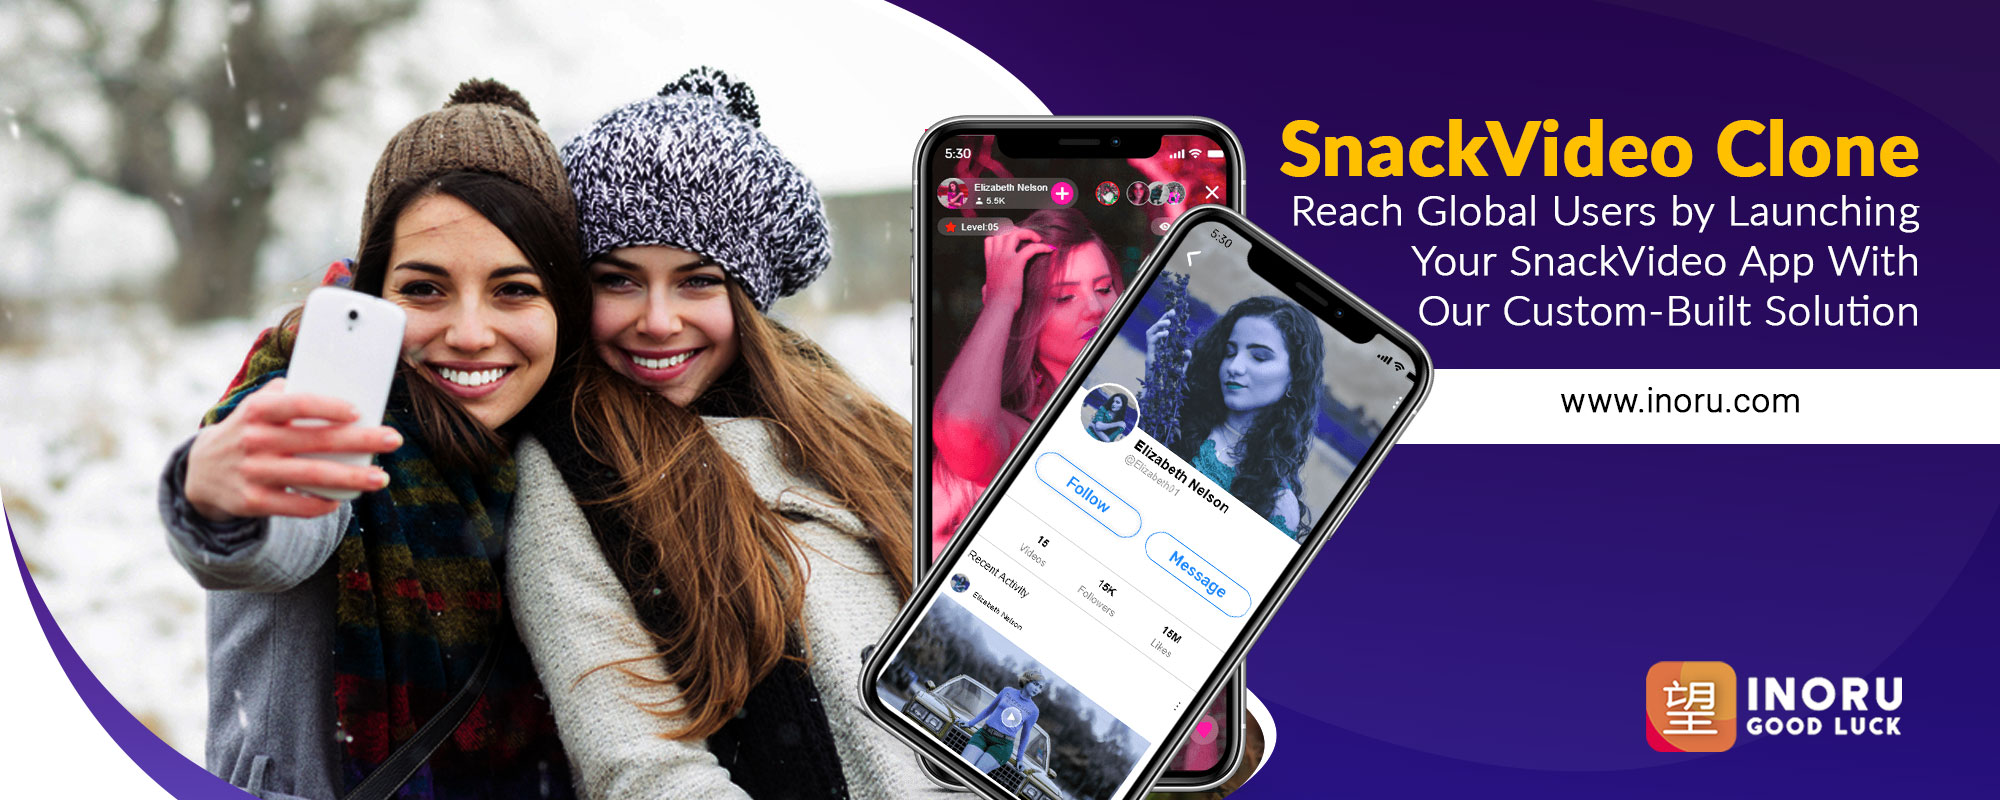 SnackVideo clone - Reach global users by launching your SnackVideo app with our custom-built solution